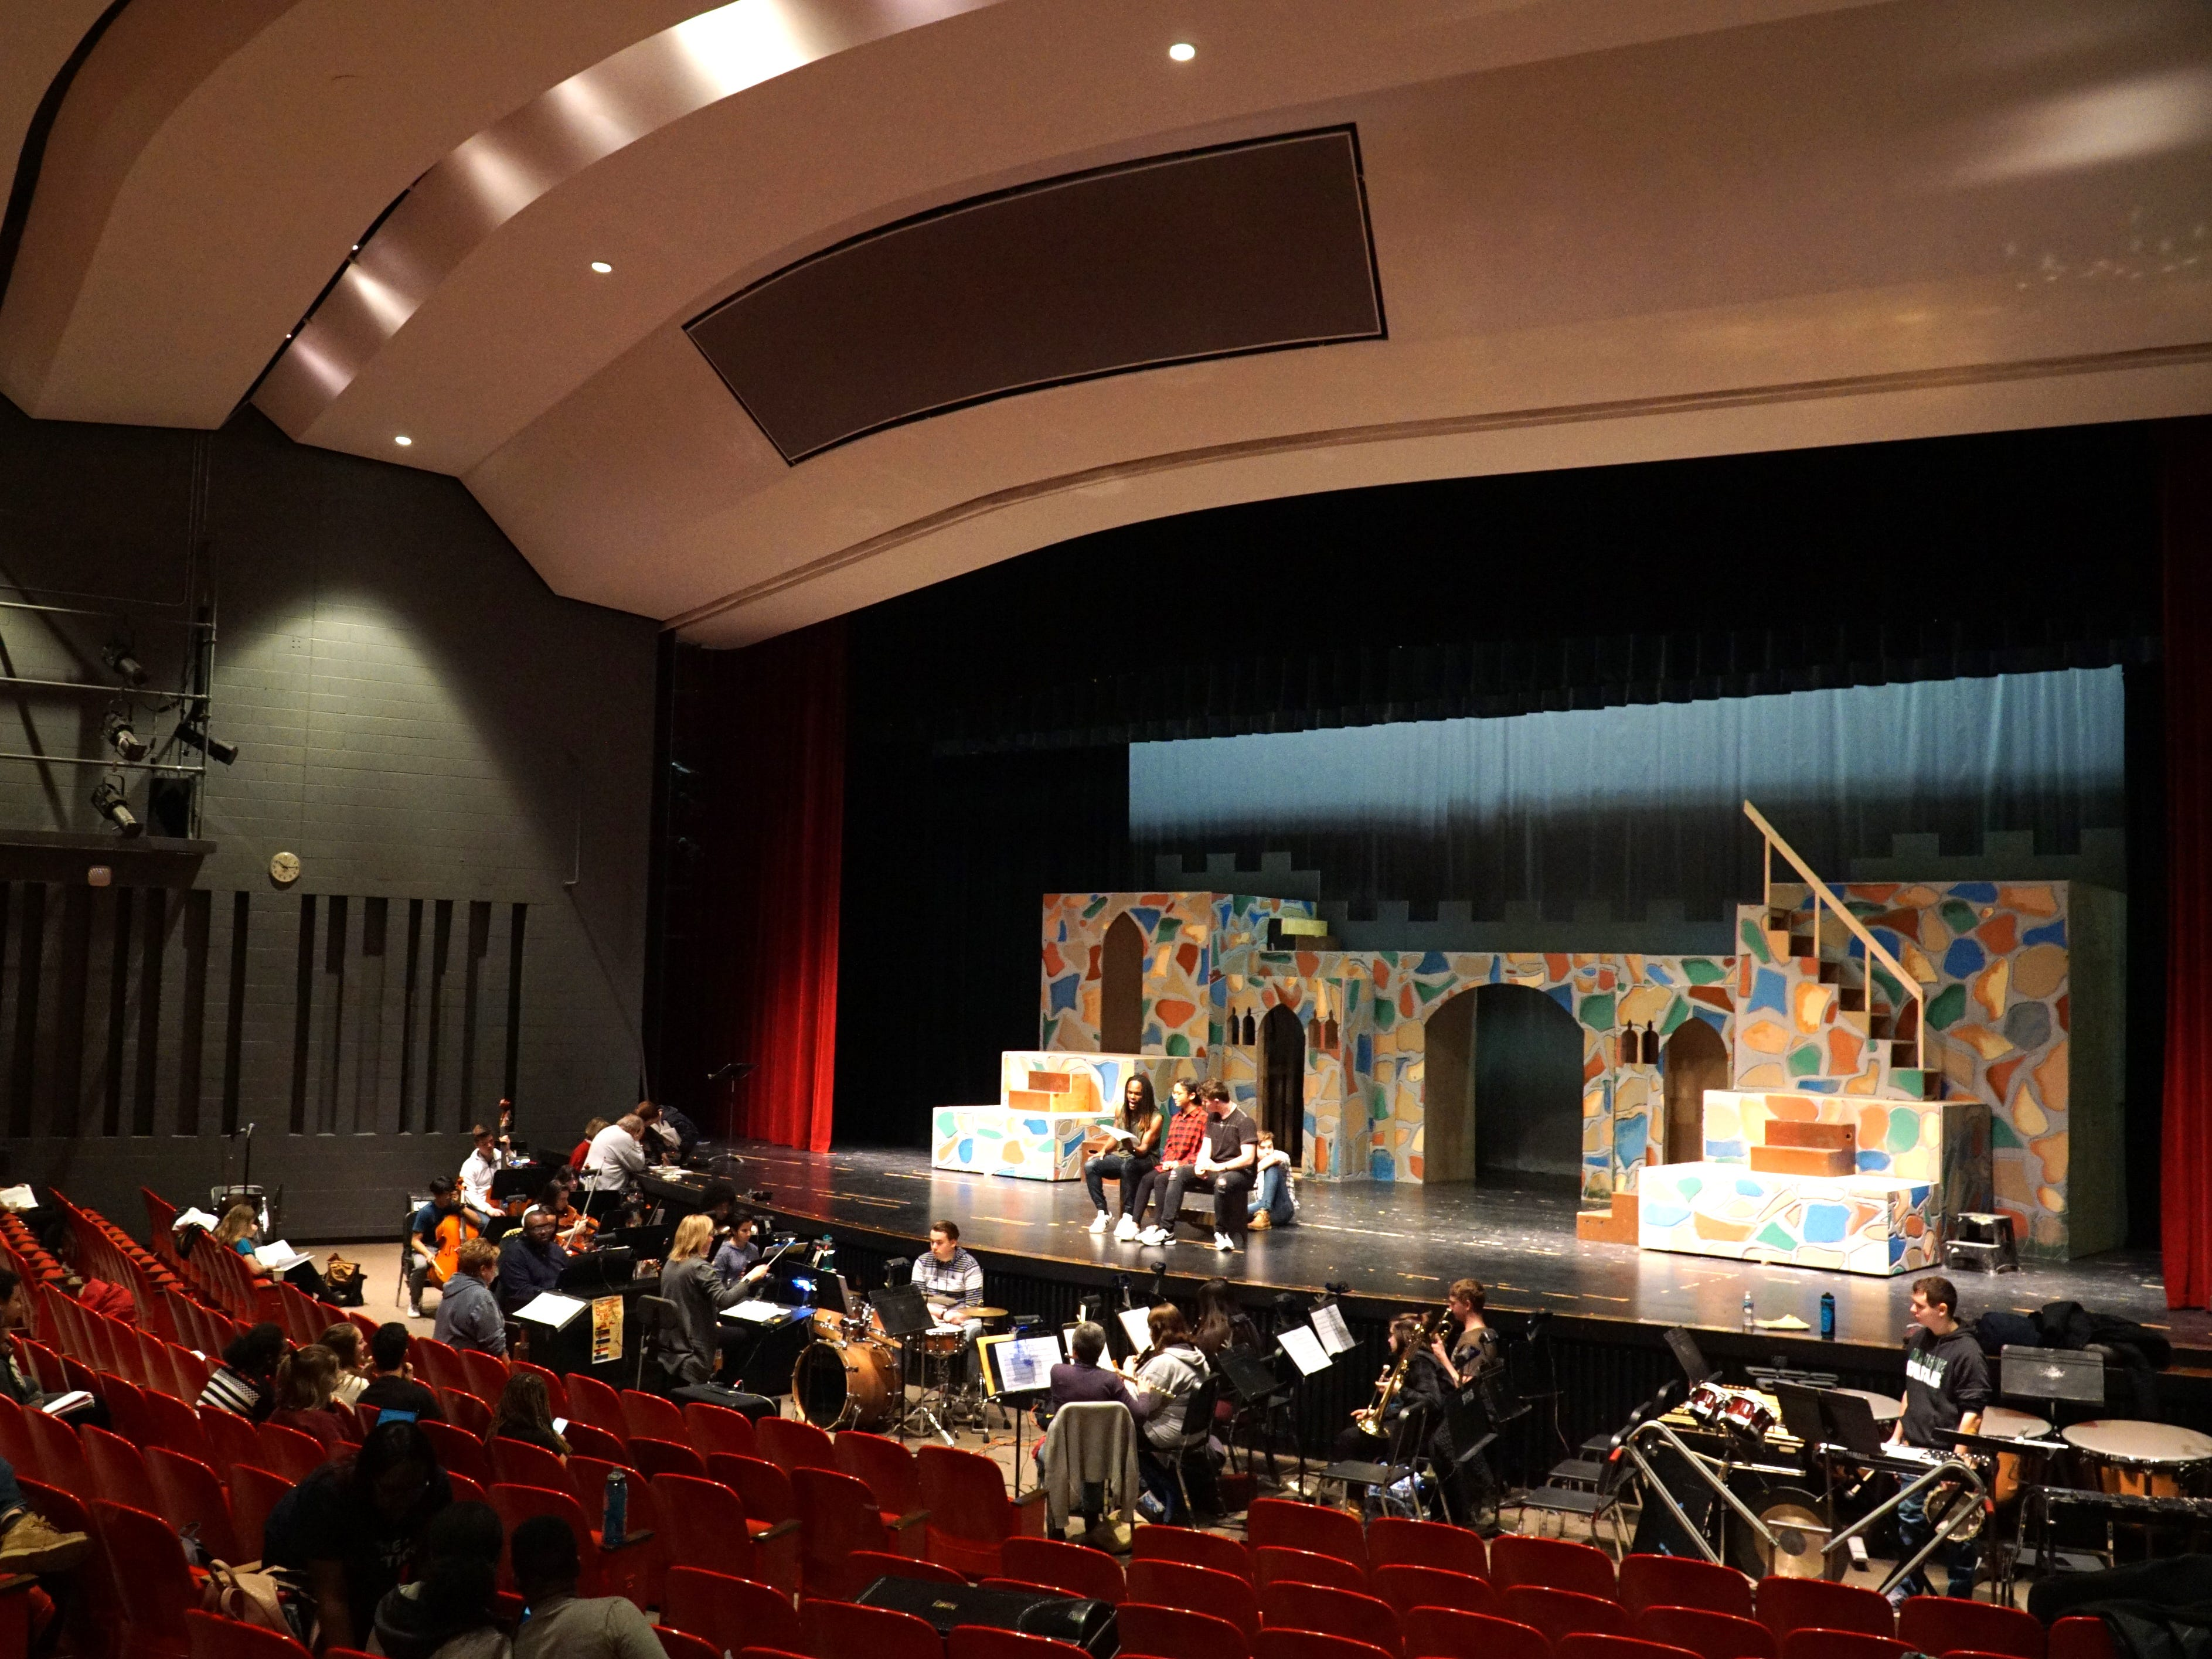 Farmington Hills Harrison students rehearse Once Upon a Mattress in their school's auditorium on March 11.